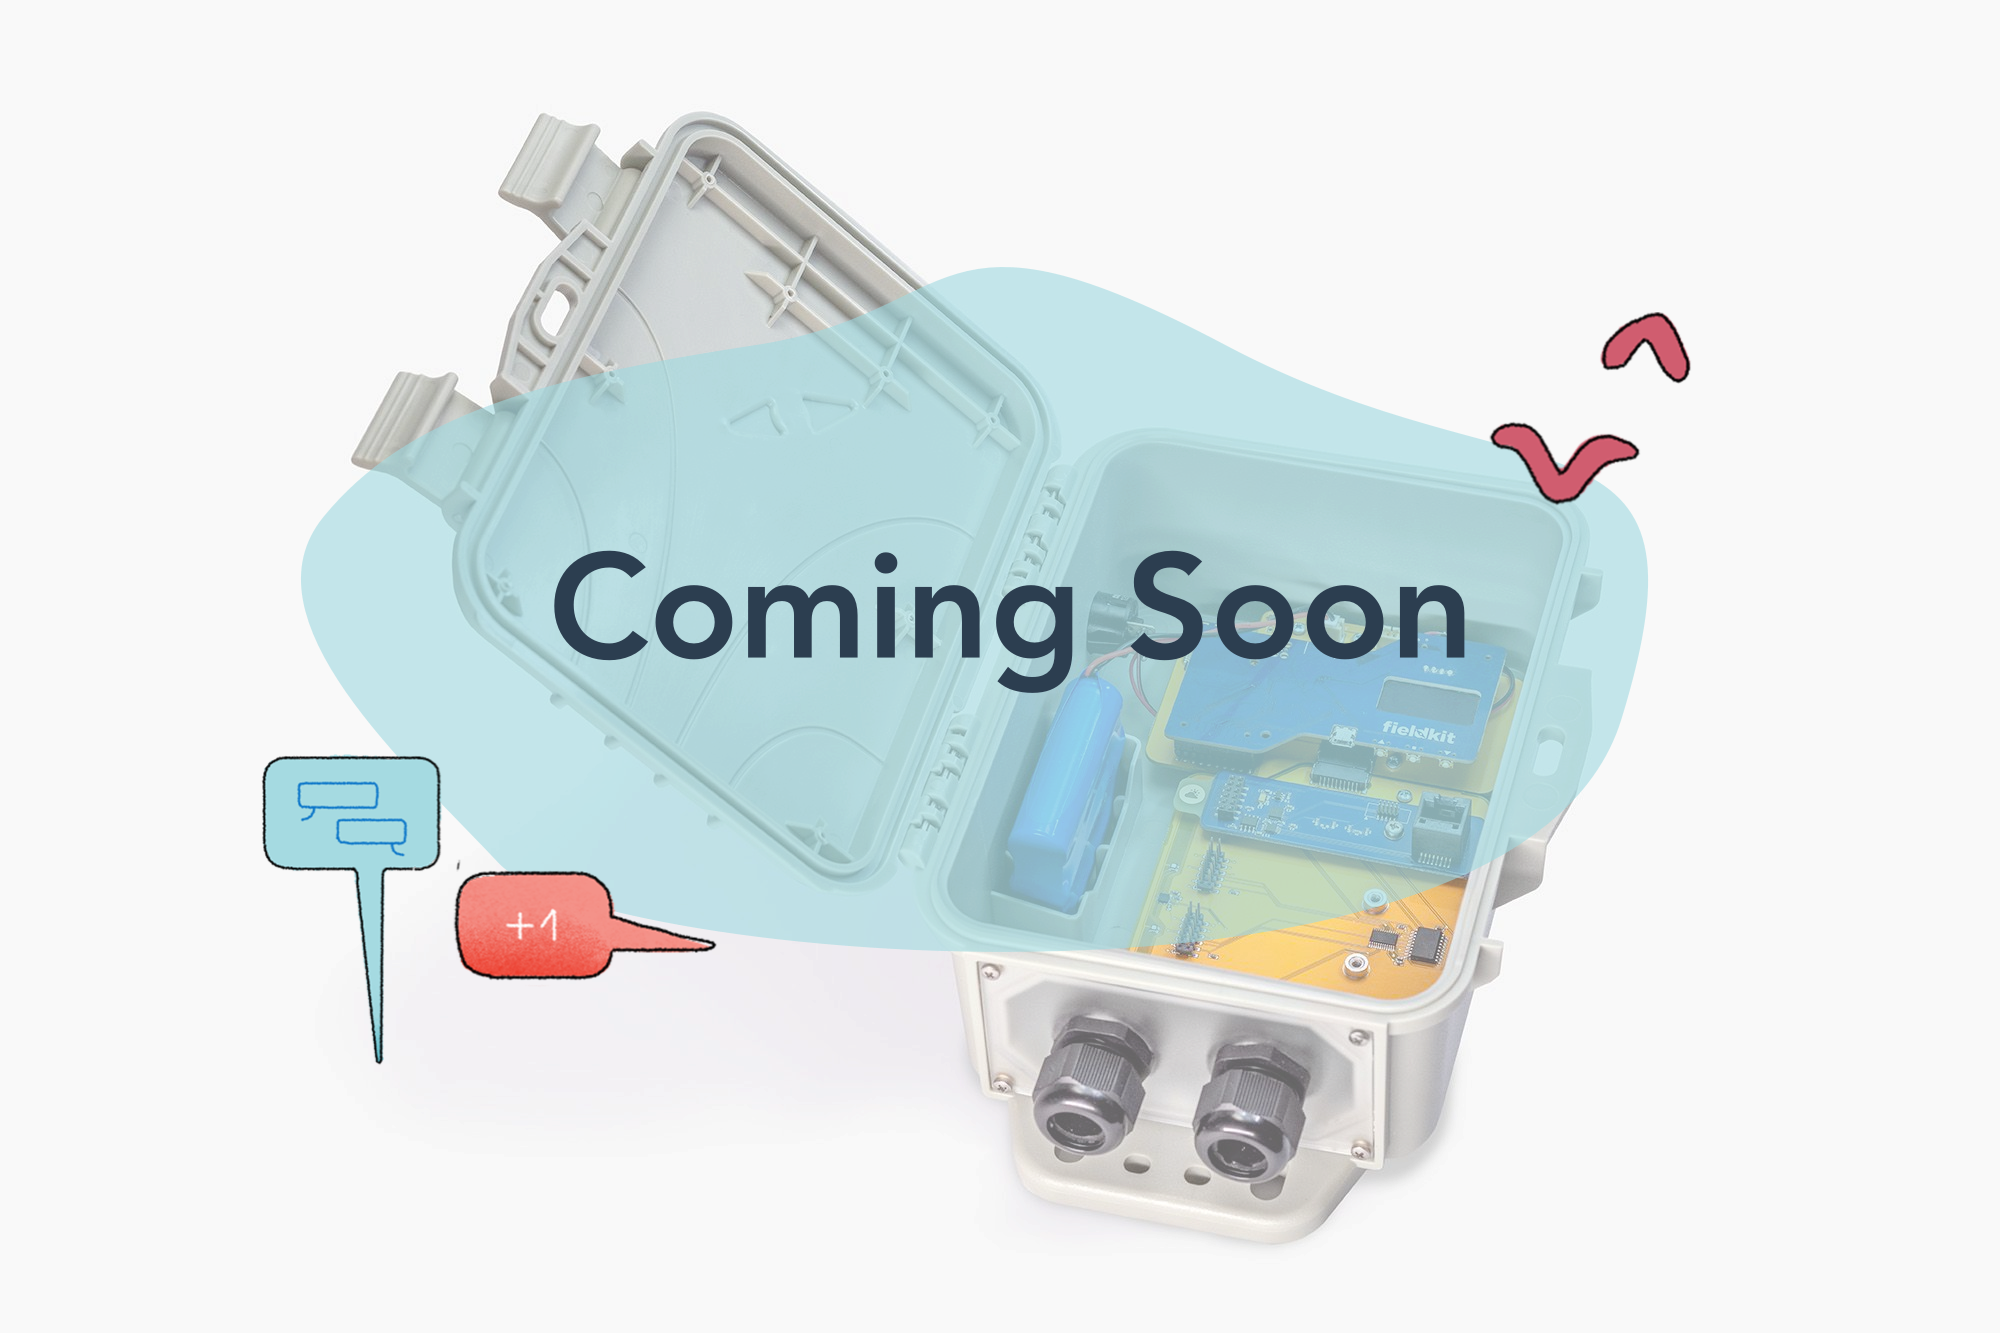 Coming Soon FieldKit Air Quality